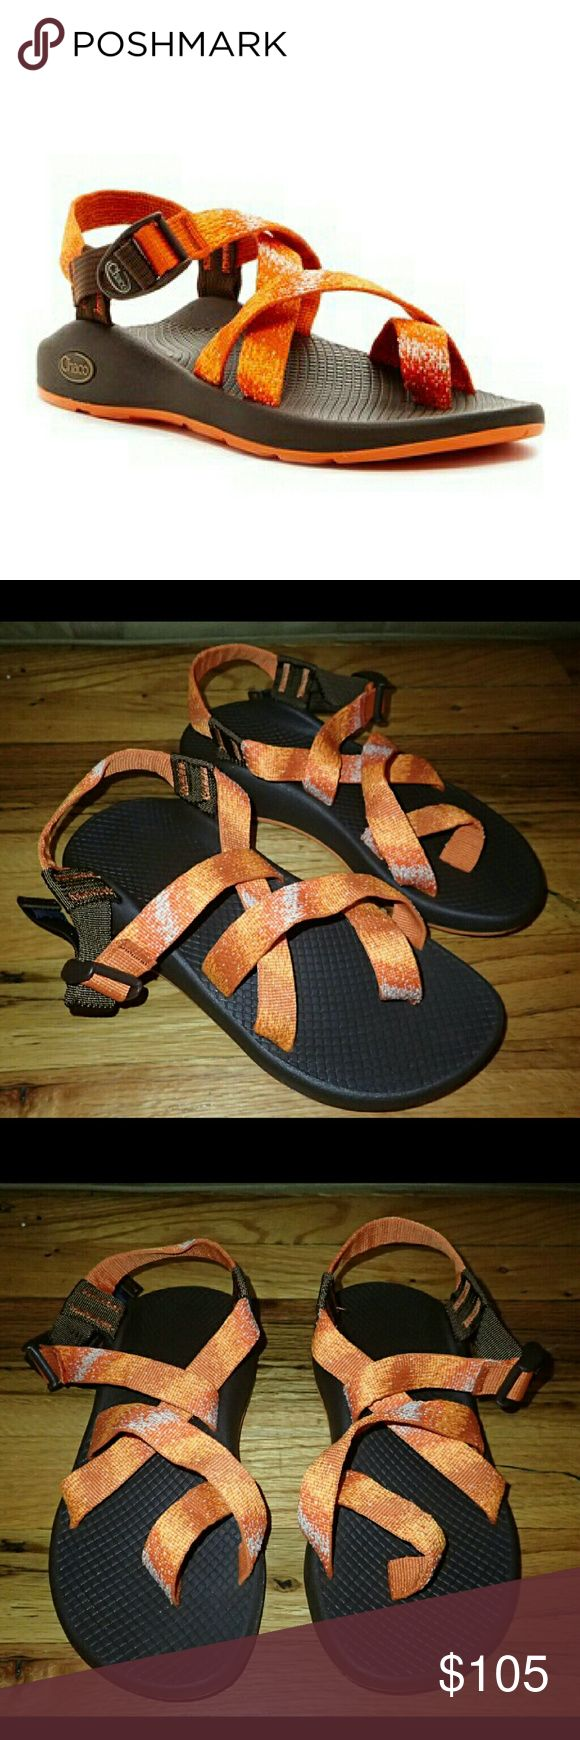 Chaco Z2 Yampa Orange Sandals 6 - New 🆕 Brand new, never worn, no damage. Comes with box.  👍 Smoke-free, pet-free household.   🚫 No trades/swaps!  🚫 No holds!  🚫 No low-balling!  🚫 No PayPal!   ✔ Reasonable offers welcomed! Please use the offer button so I know you are serious about the item! I will not respond to price negotiations via comments.  ✔ I love bundling! Not only will you get ONE shipping fee, I will also discount your combined total! Please ask me in the comments!  😜…